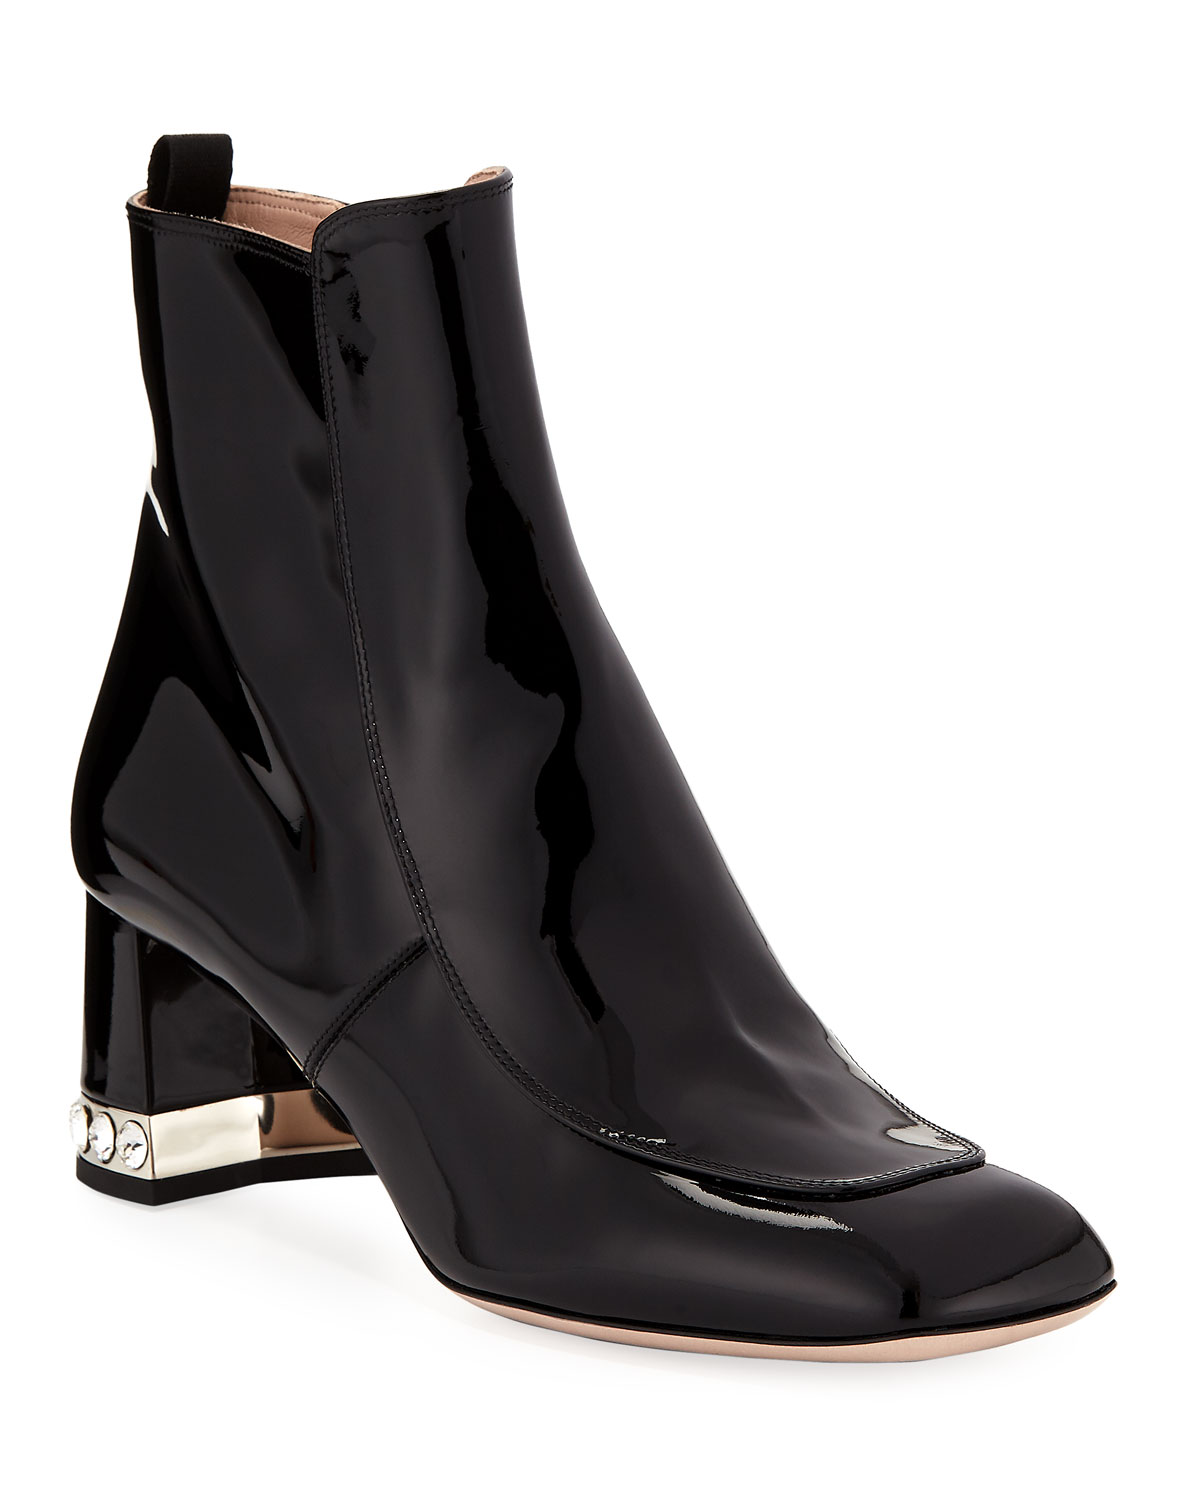 a0e72f567d8b Miu Miu Patent Leather Block-Heel Ankle Boots